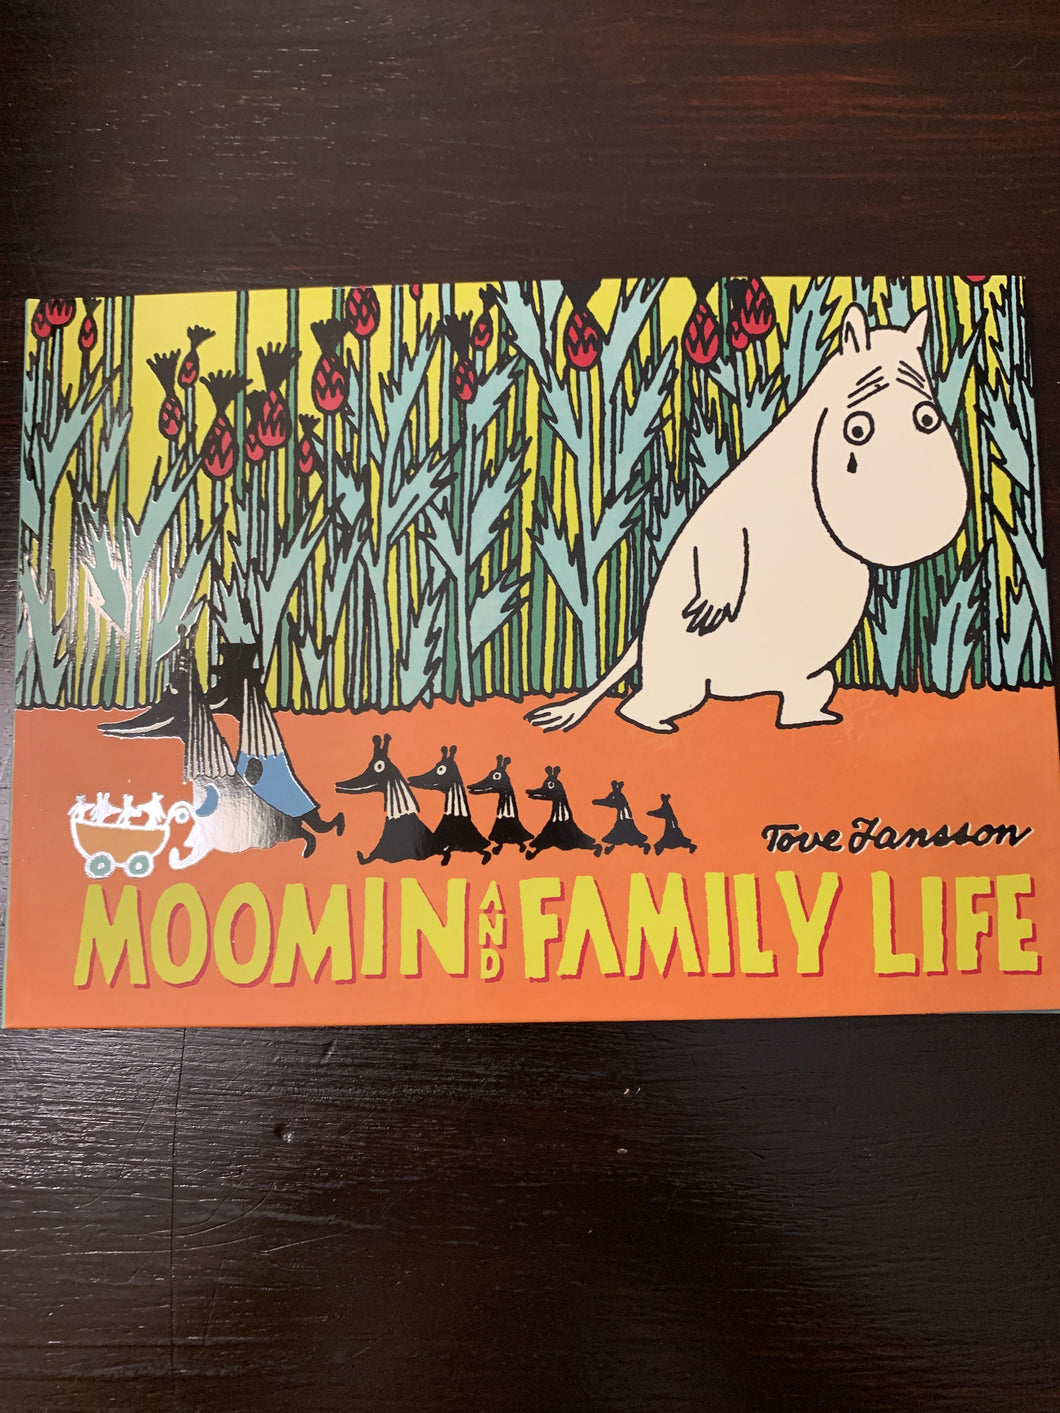 Moomin and Family Life